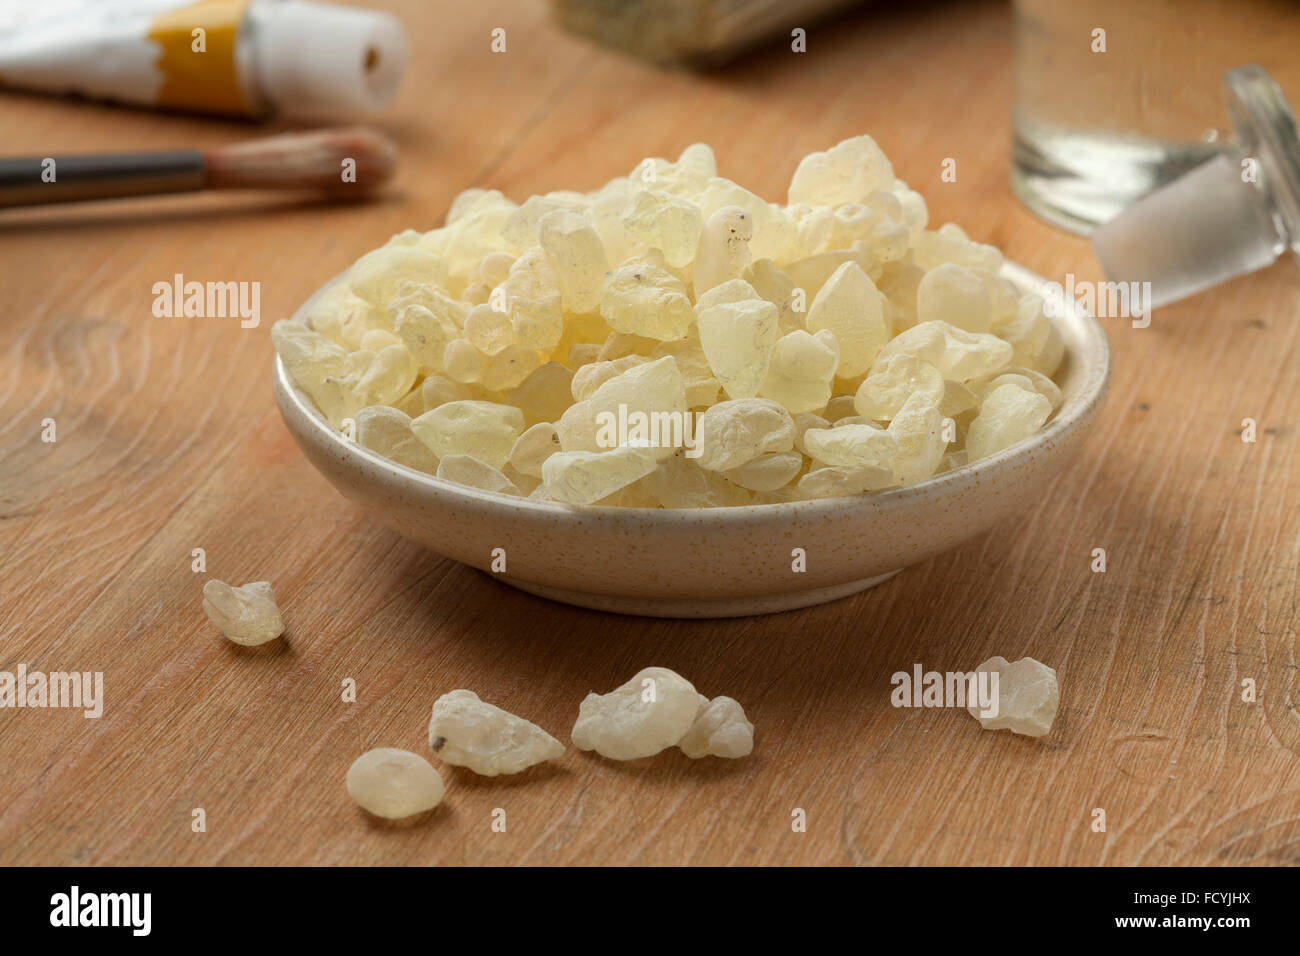 Mastic tears of Chios to use as varnish for paintings - Stock Image